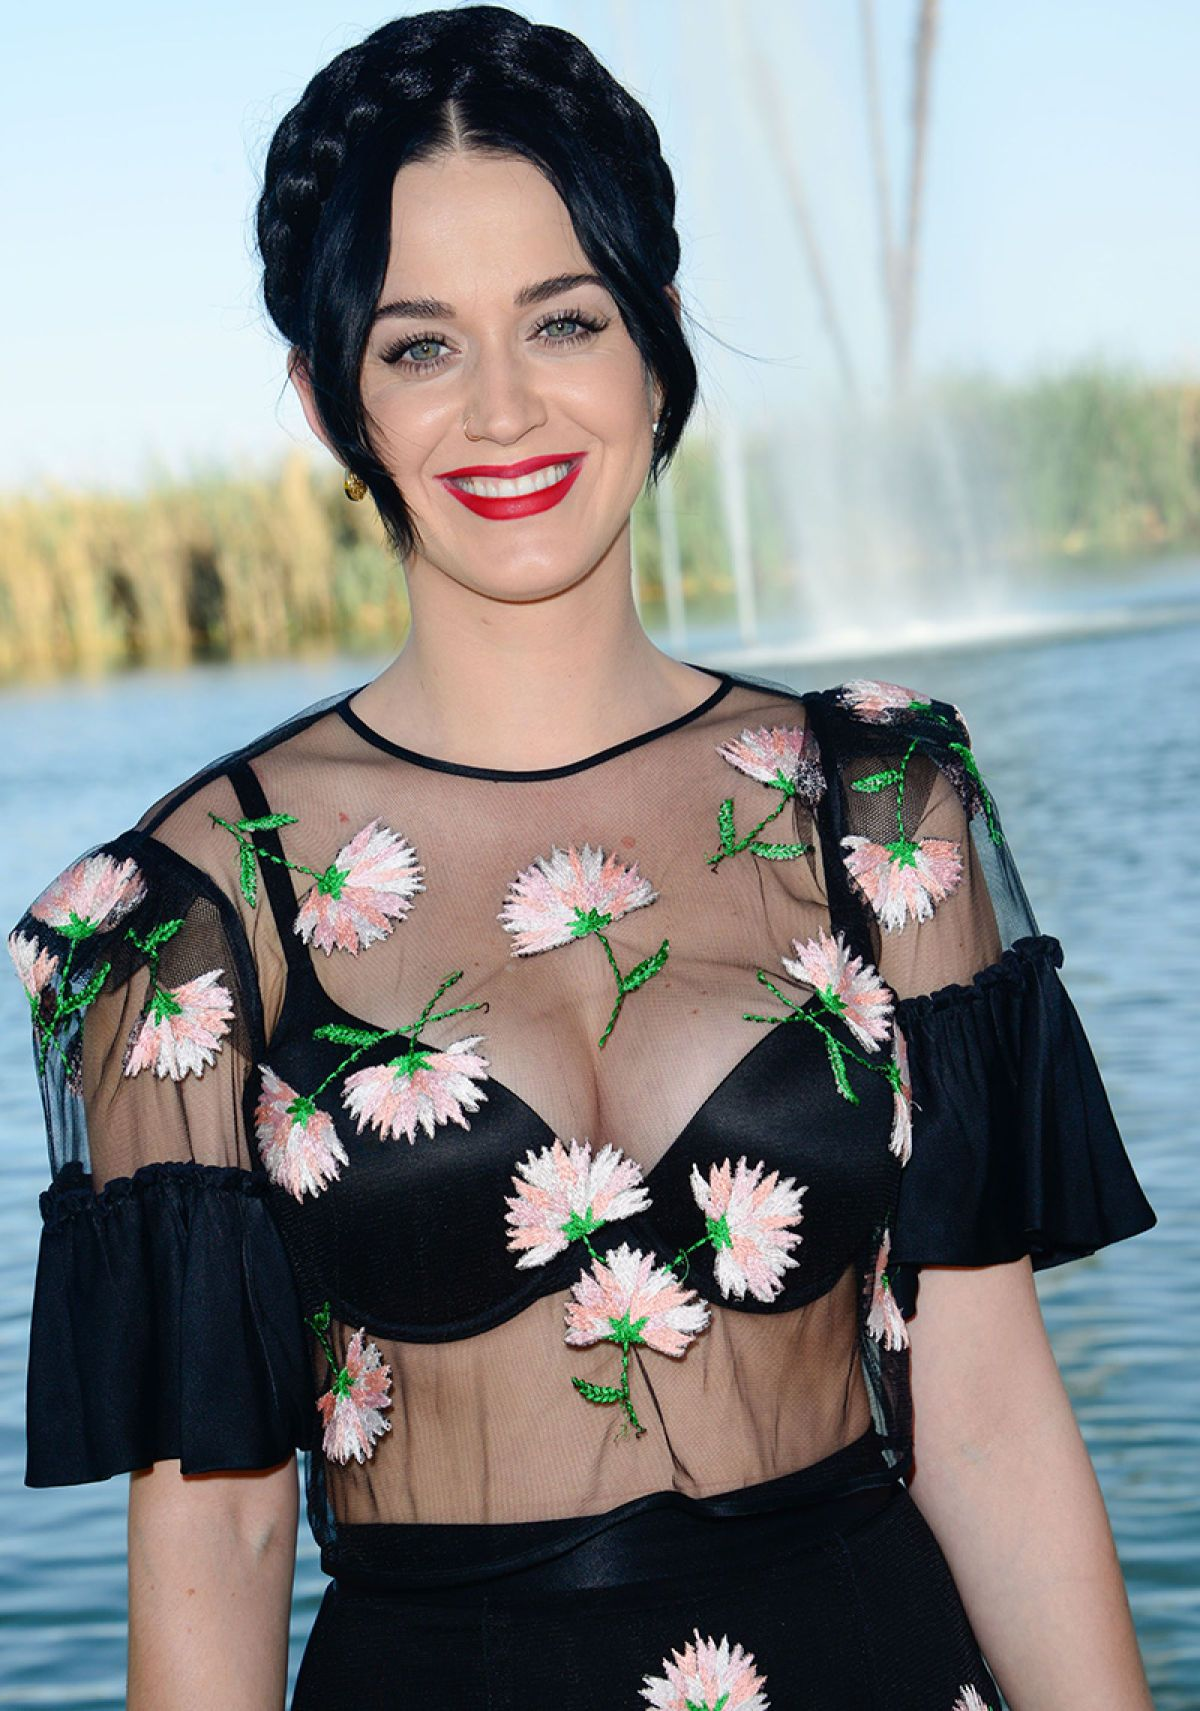 Watch Katy Perry Bounces Her Breasts While Singing video